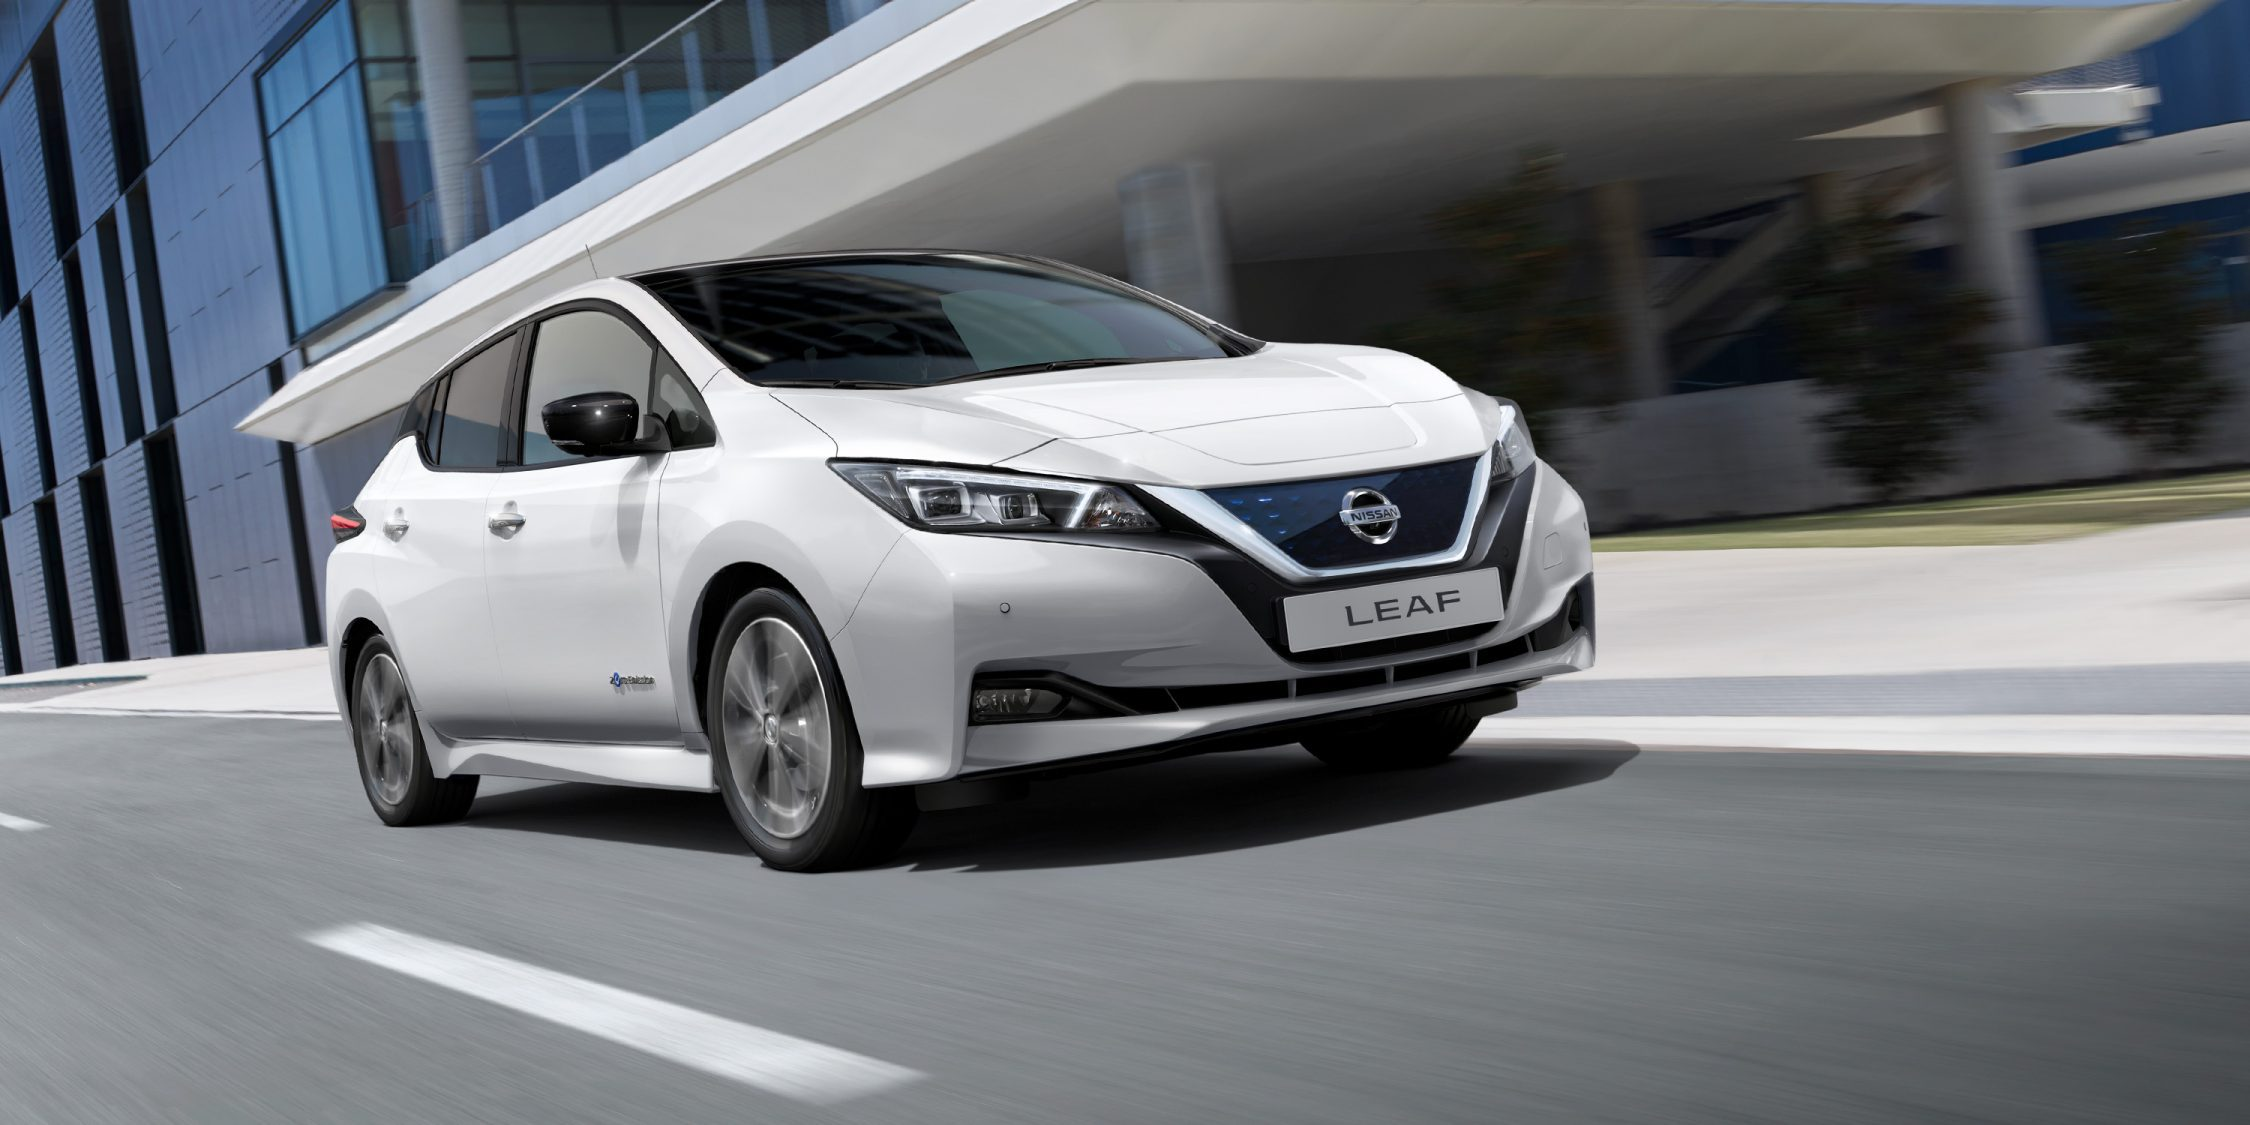 New Nissan LEAF driving on a city street